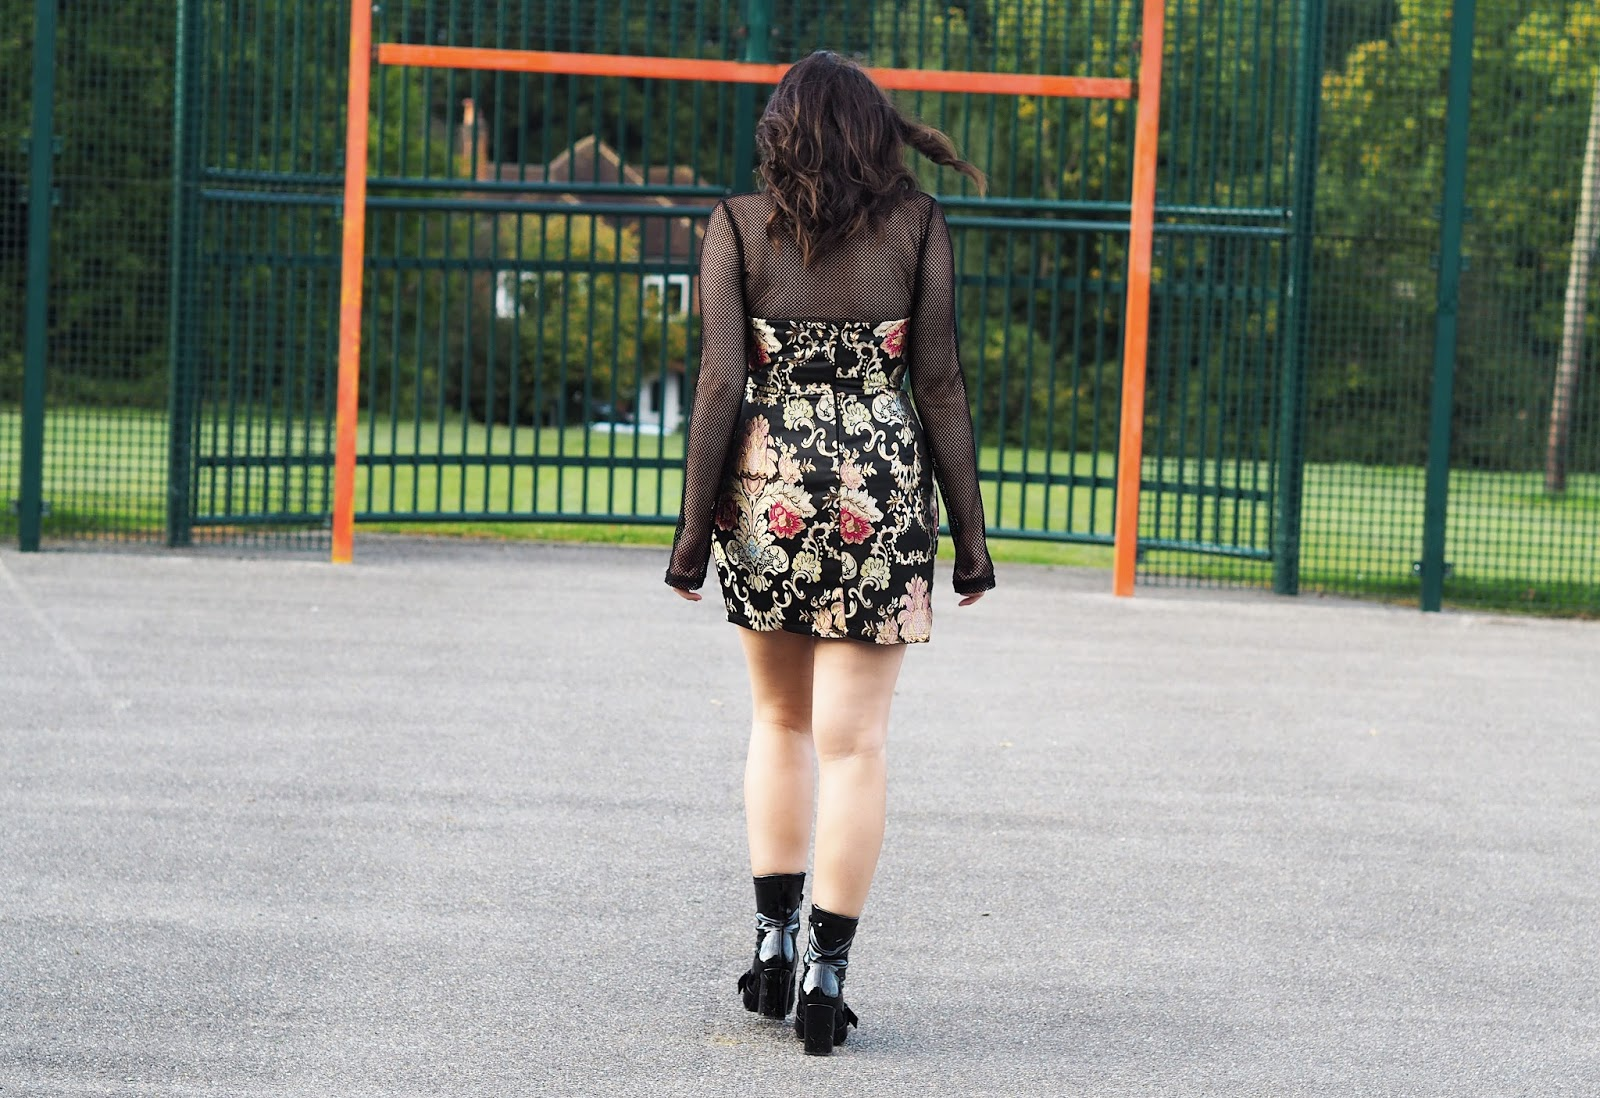 fATE BLACK FLORAL BROCADE BANDEAU DRESS, inthestyle dress, nakd fashion mesh top, nasty gals do it better, 7 things you tell yourself in your twenties, uk fashion blogger